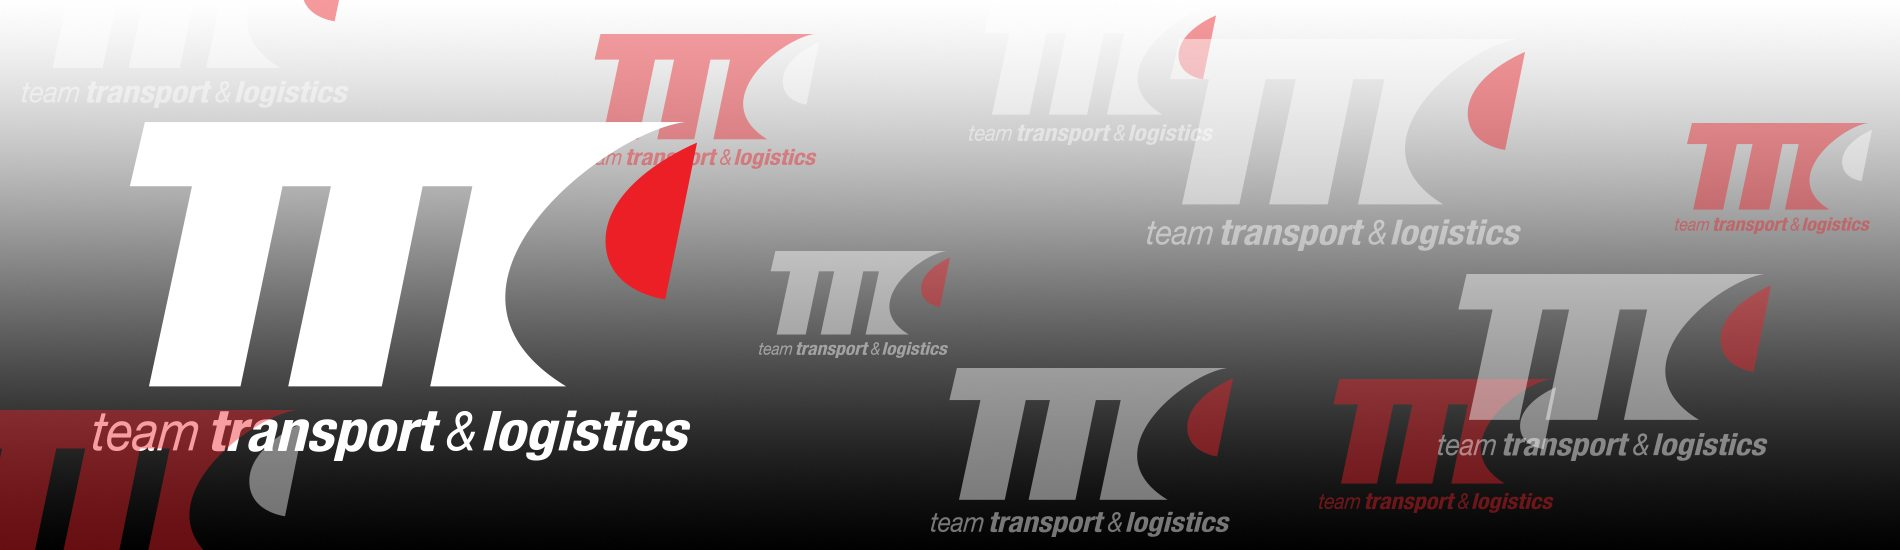 team transport and logistics logo designs on the grey background